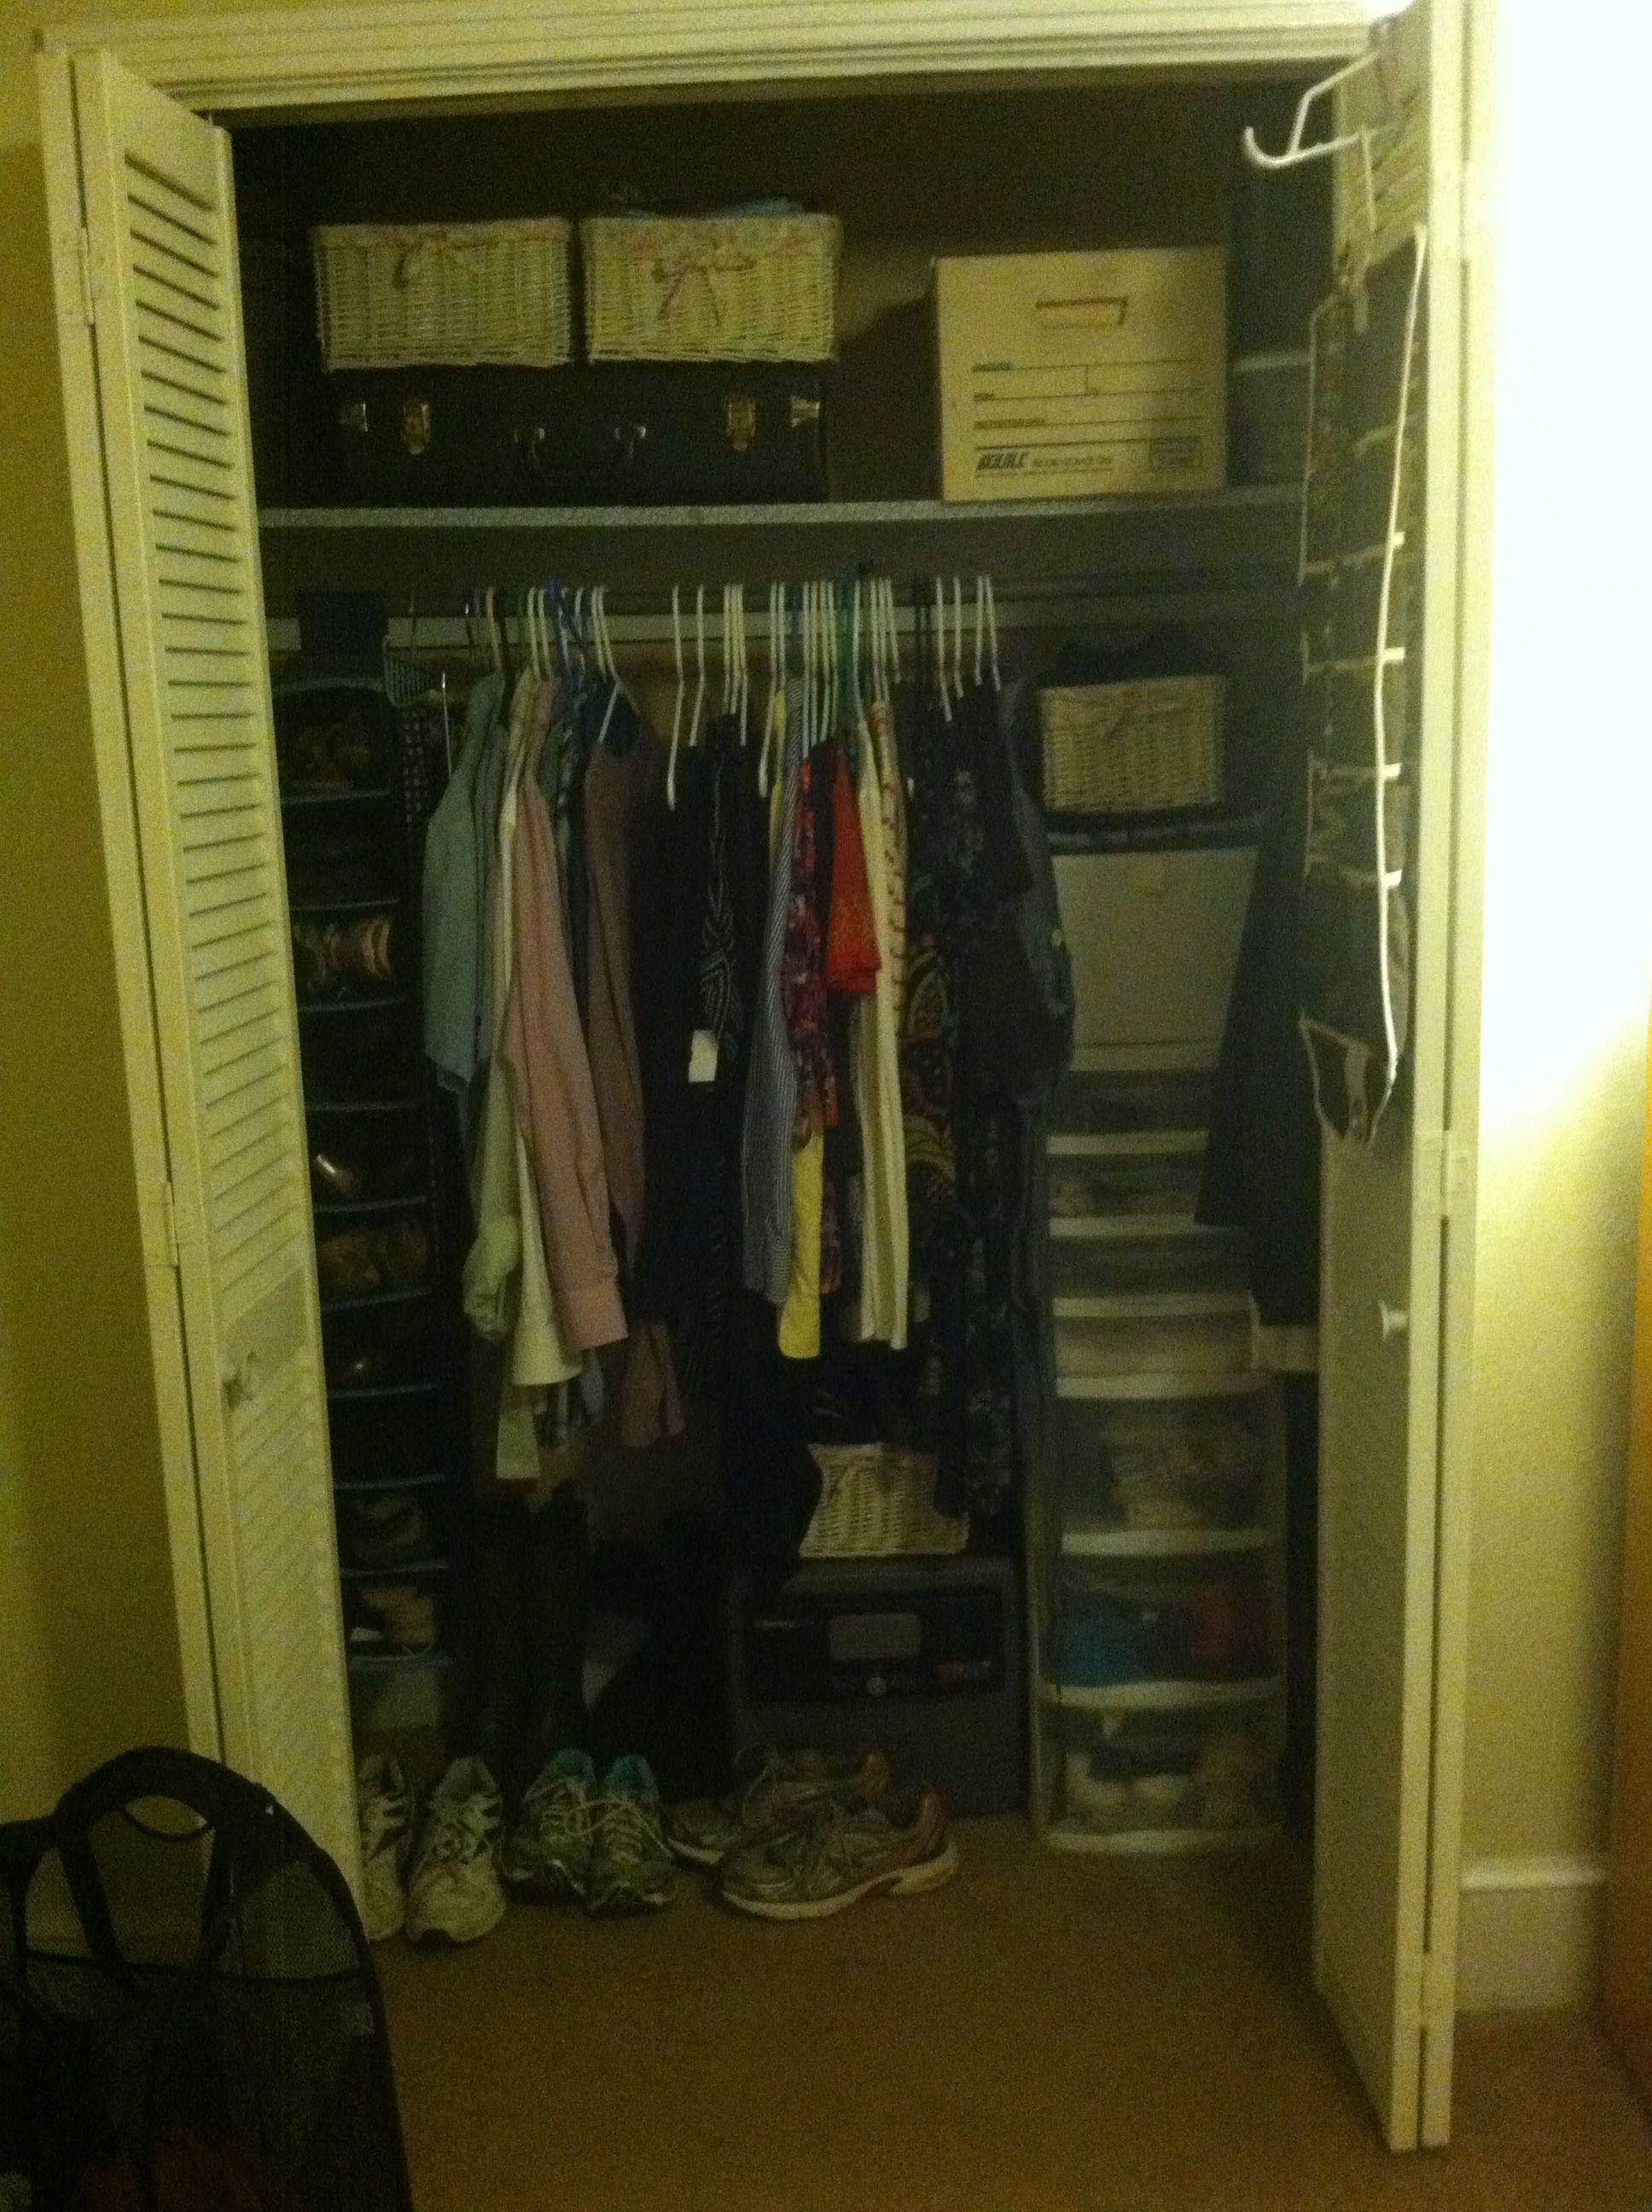 Organized Closet Real Life This Is The Size Of My Real Closet So Lets See  If I Can Organize It Like The Pictures Say?